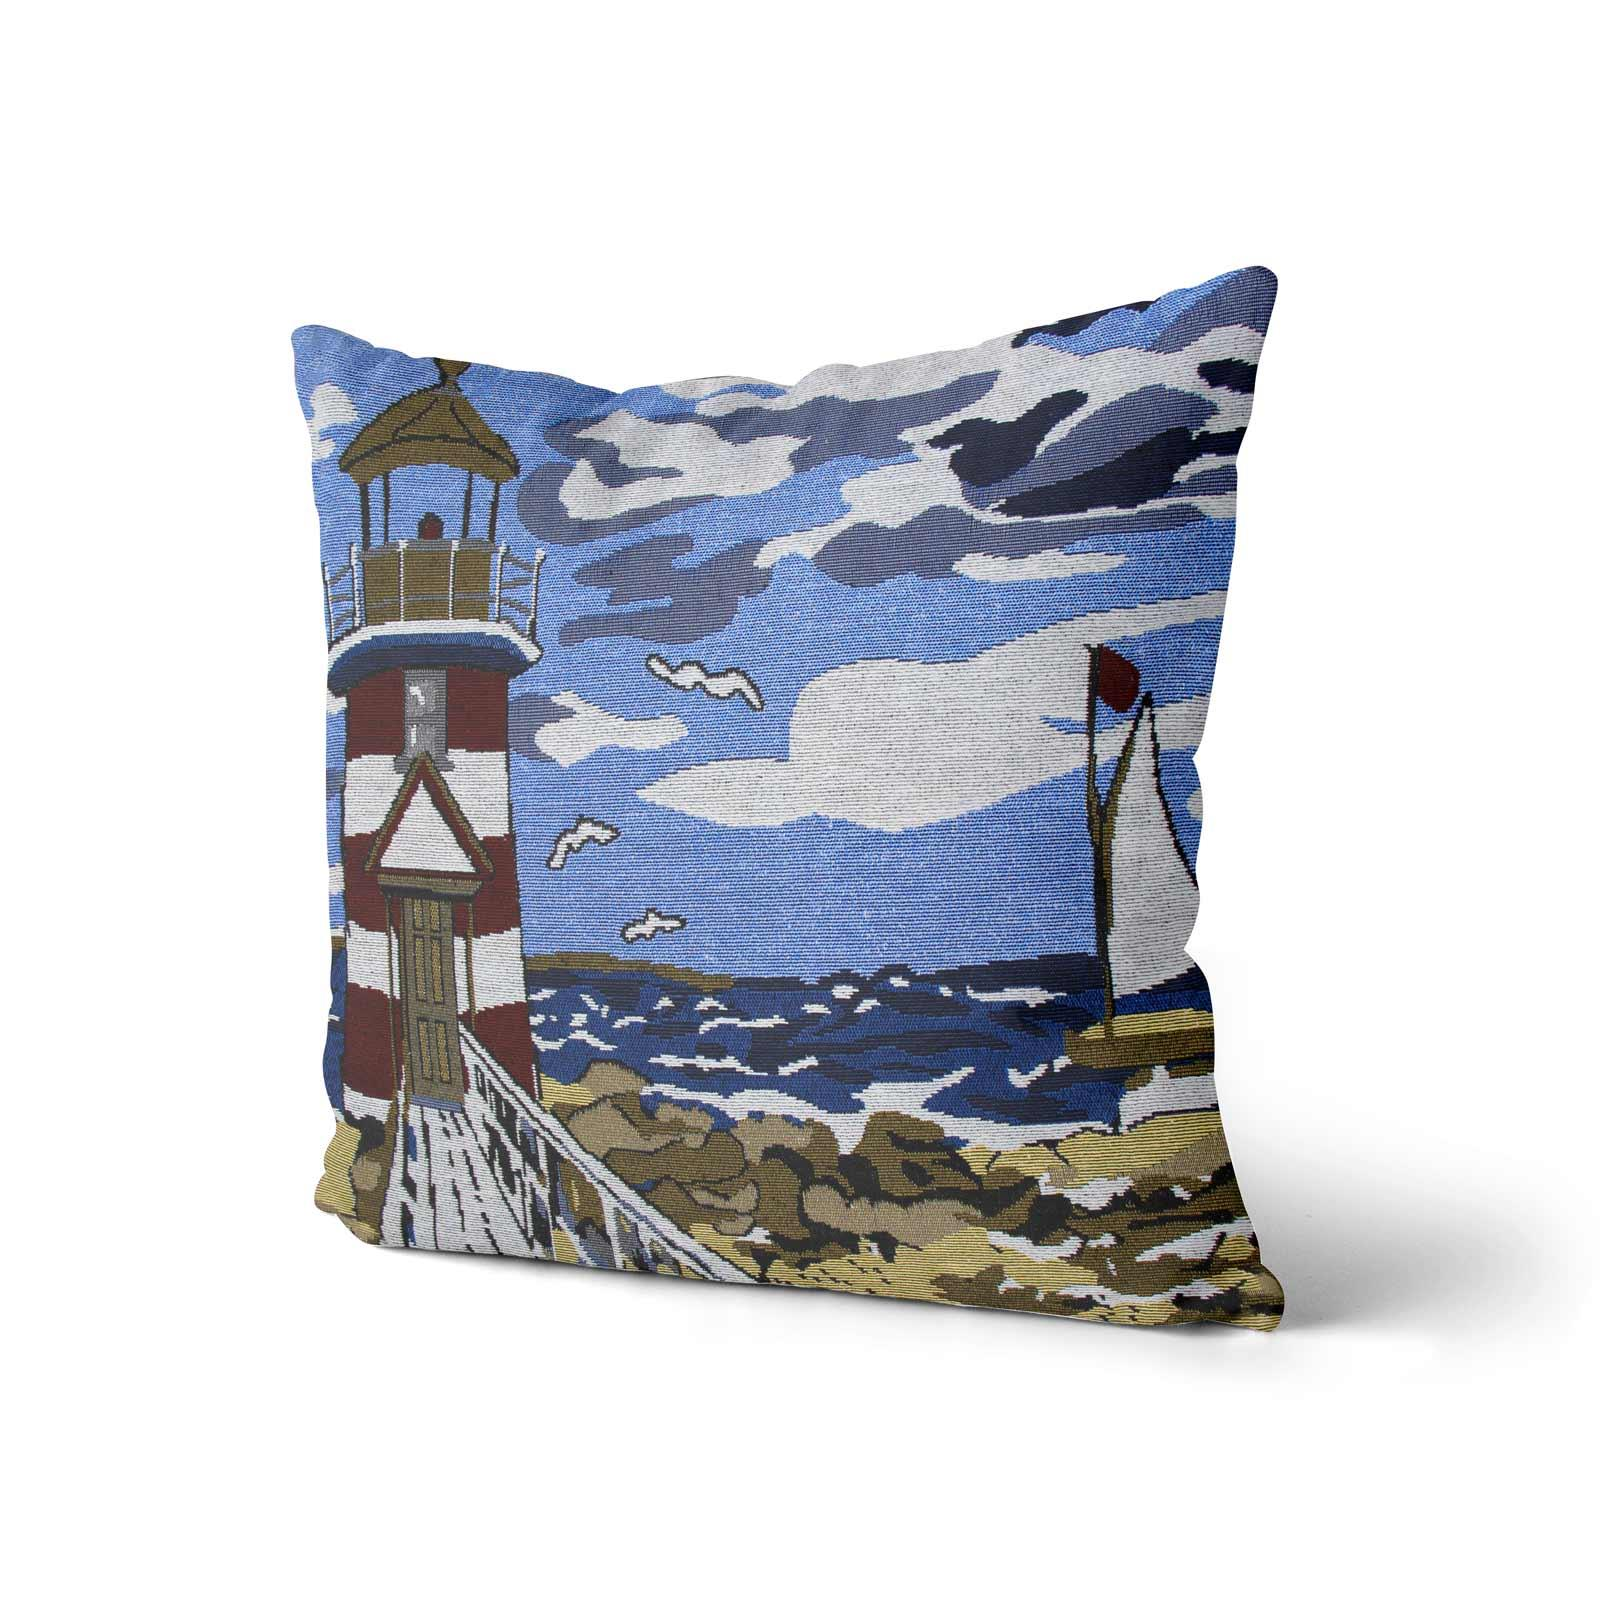 Tapestry-Cushion-Covers-Vintage-Pillow-Cover-Collection-18-034-45cm-Filled-Cushions thumbnail 186